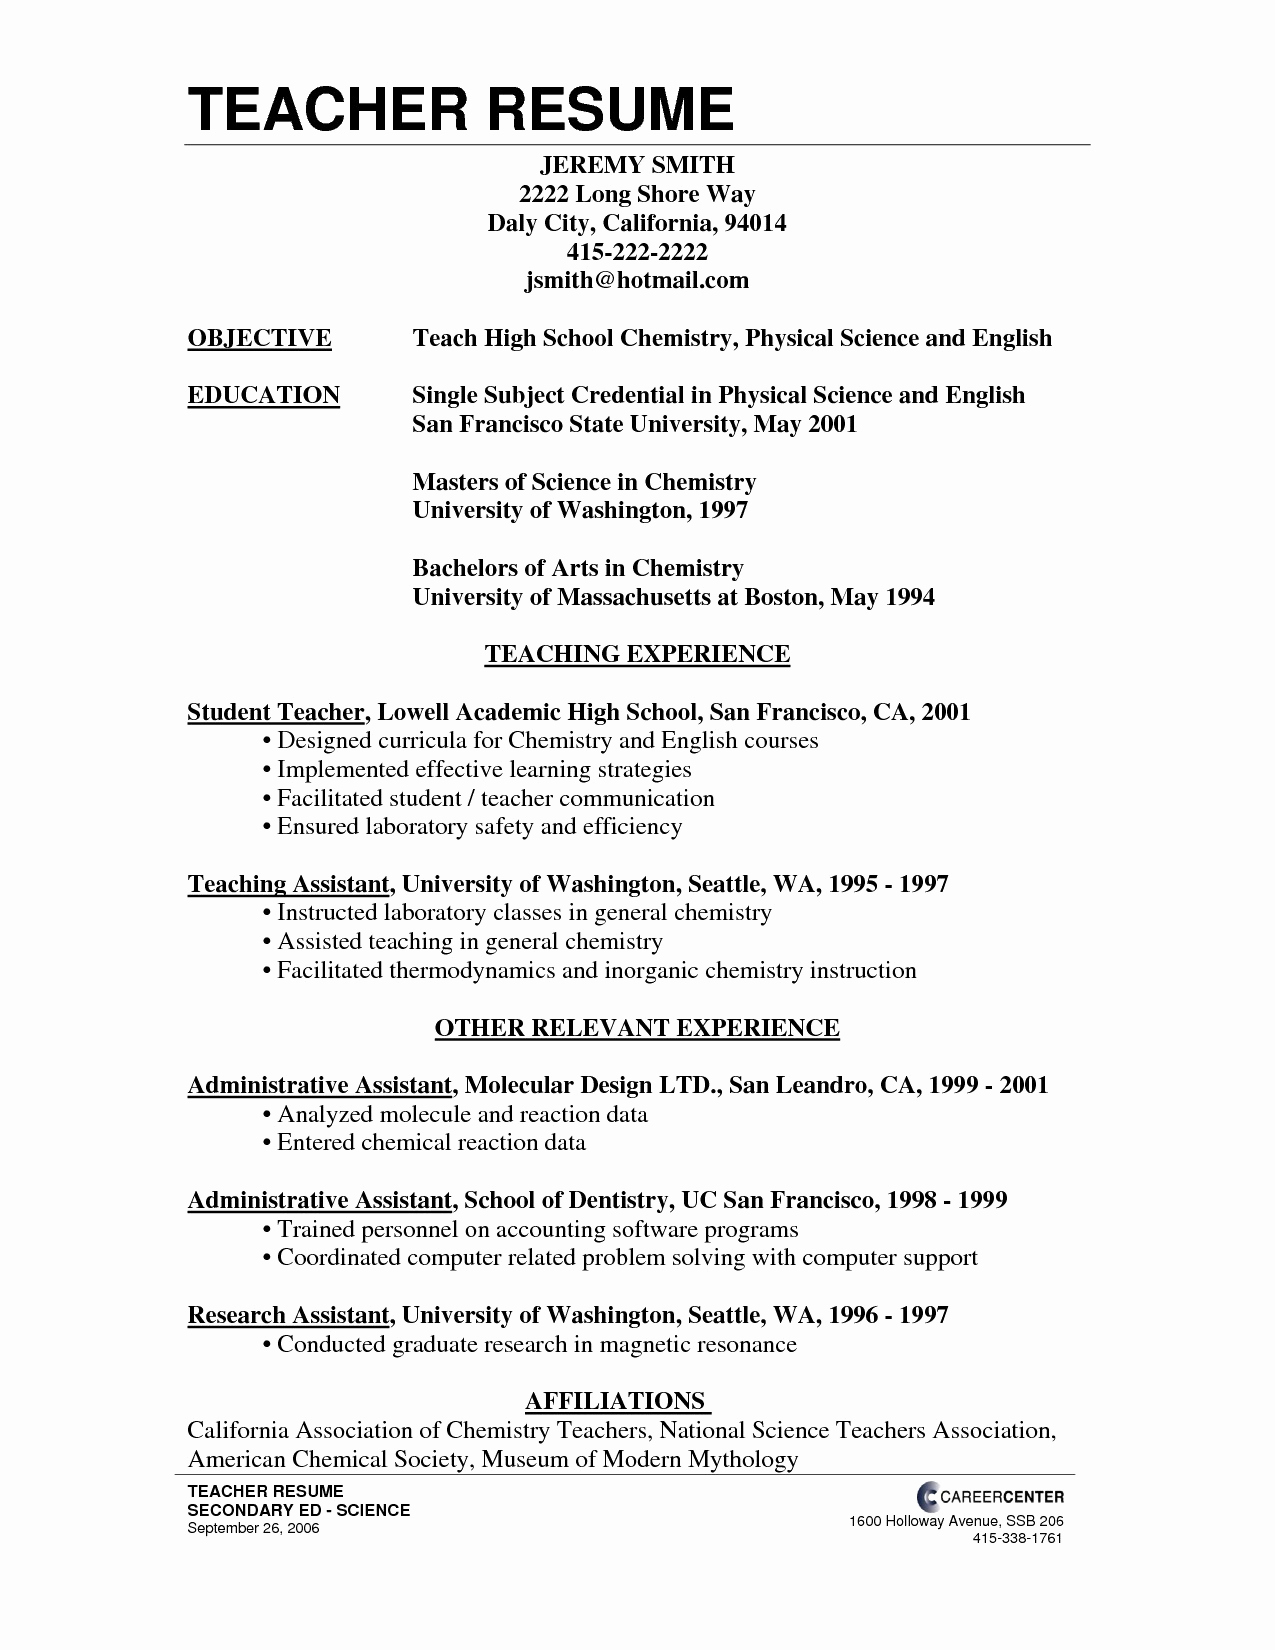 Professional Cover Letter Template - Resume Cover Letter Example New Free Cover Letter Templates Examples